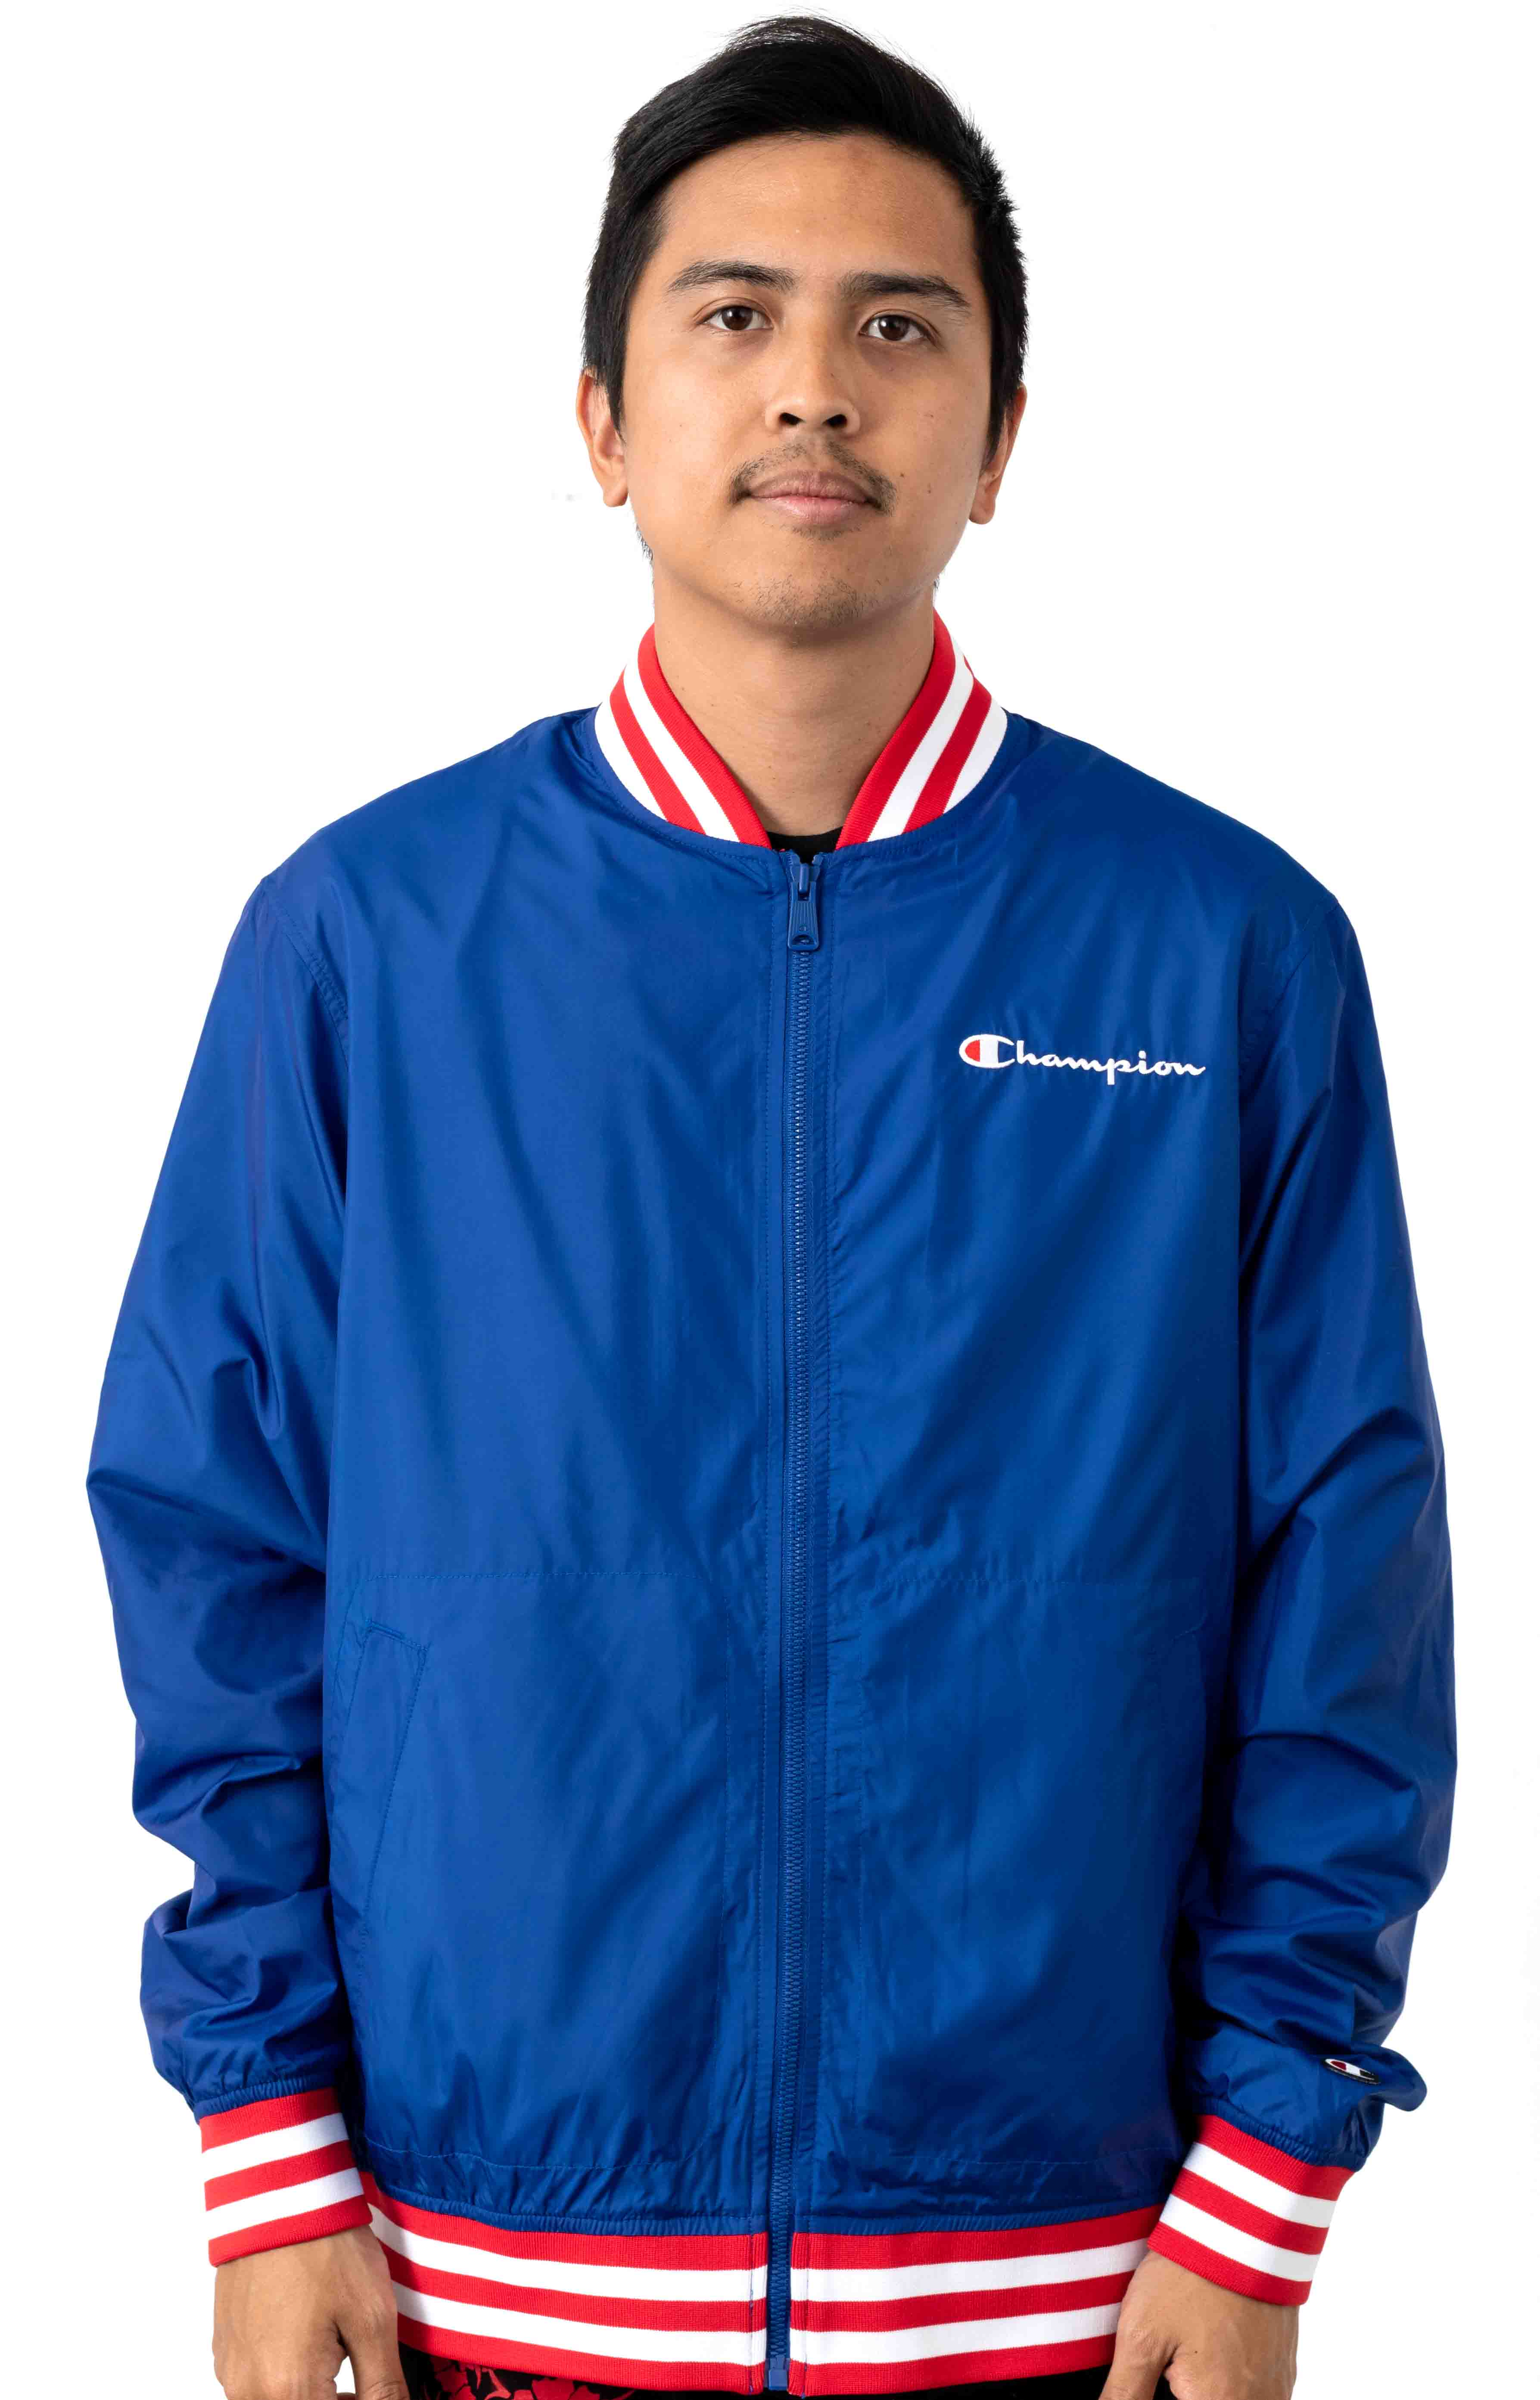 Satin Champion Embroidered Script Baseball Jacket - Surf The Web/Scarlet